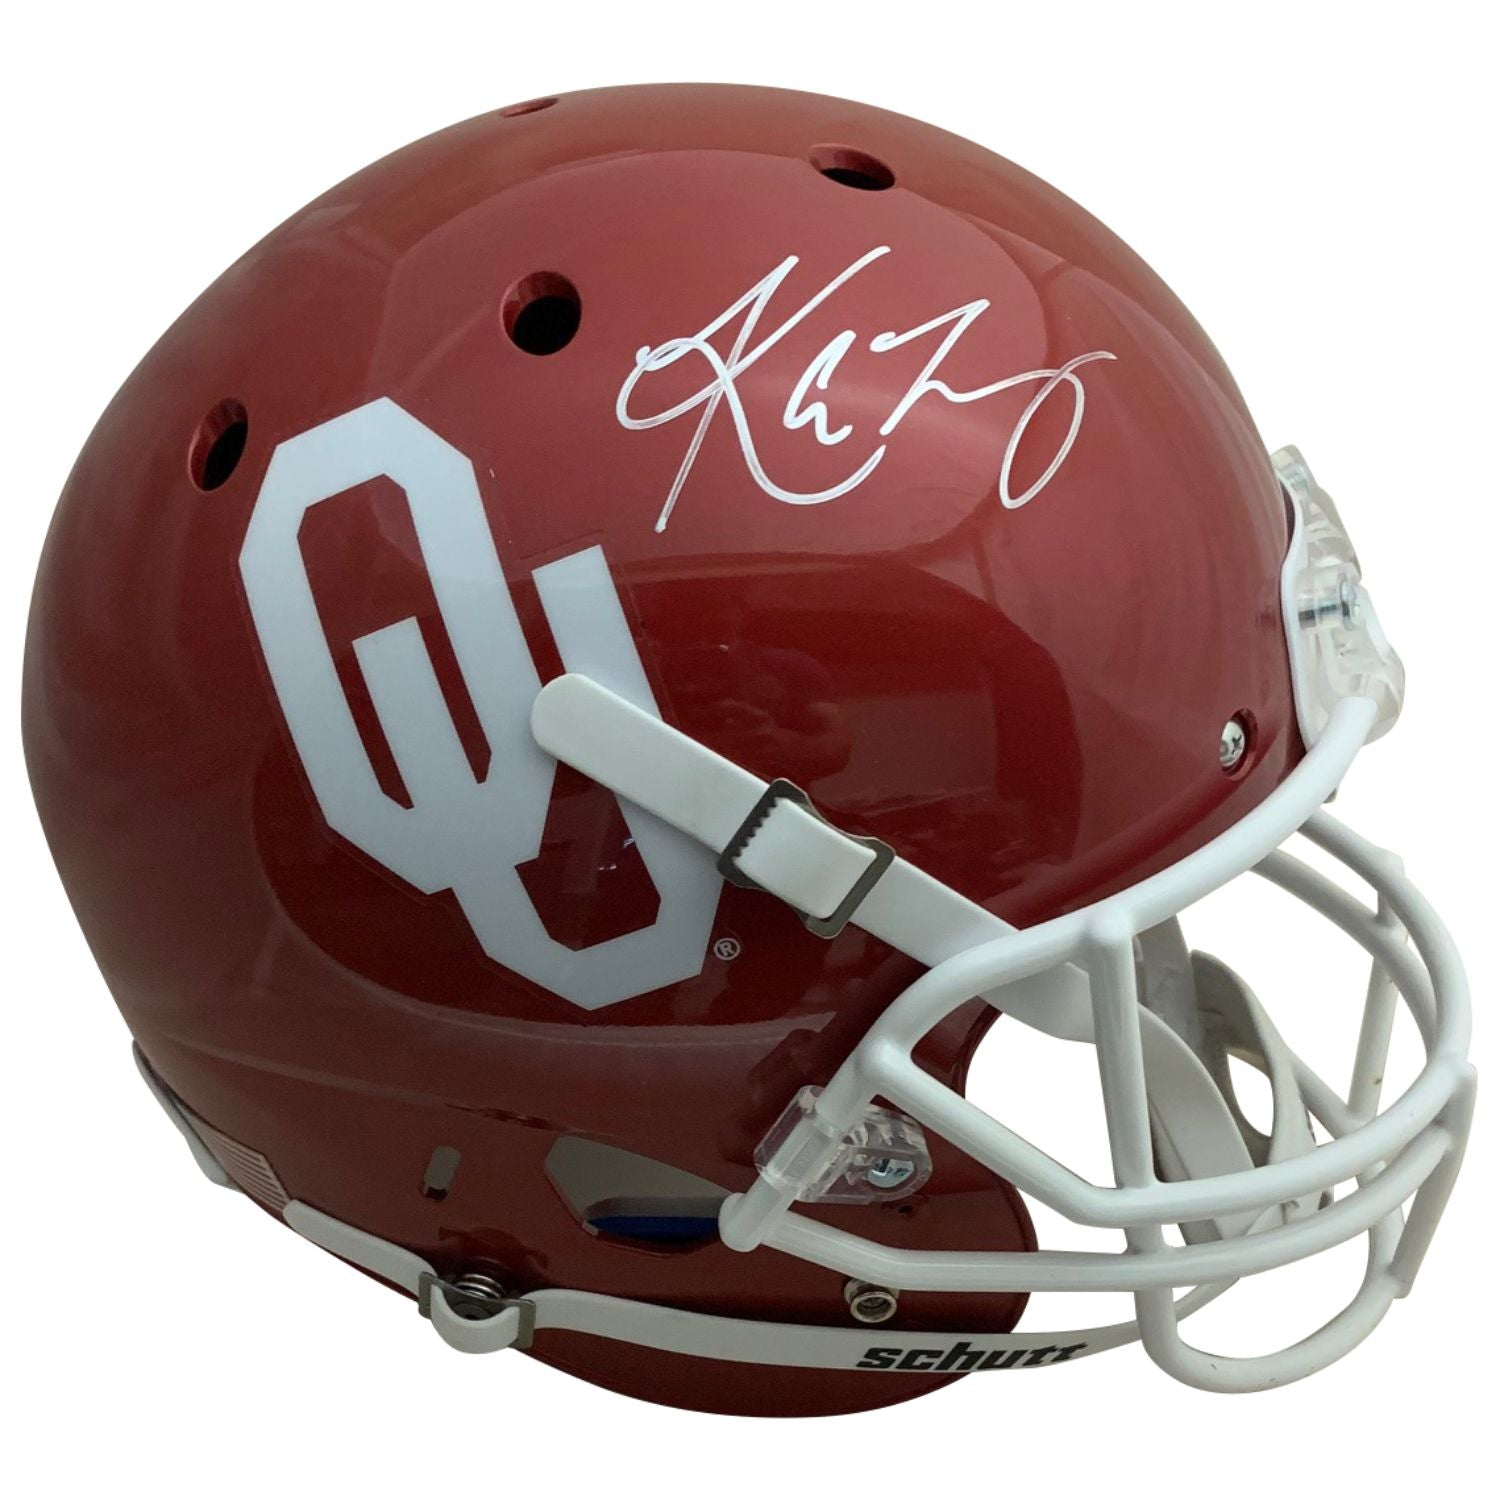 Kyler Murray Autographed Oklahoma Sooners Heisman Trophy Signed Football Full Size Helmet PSA DNA COA-Powers Sports Memorabilia